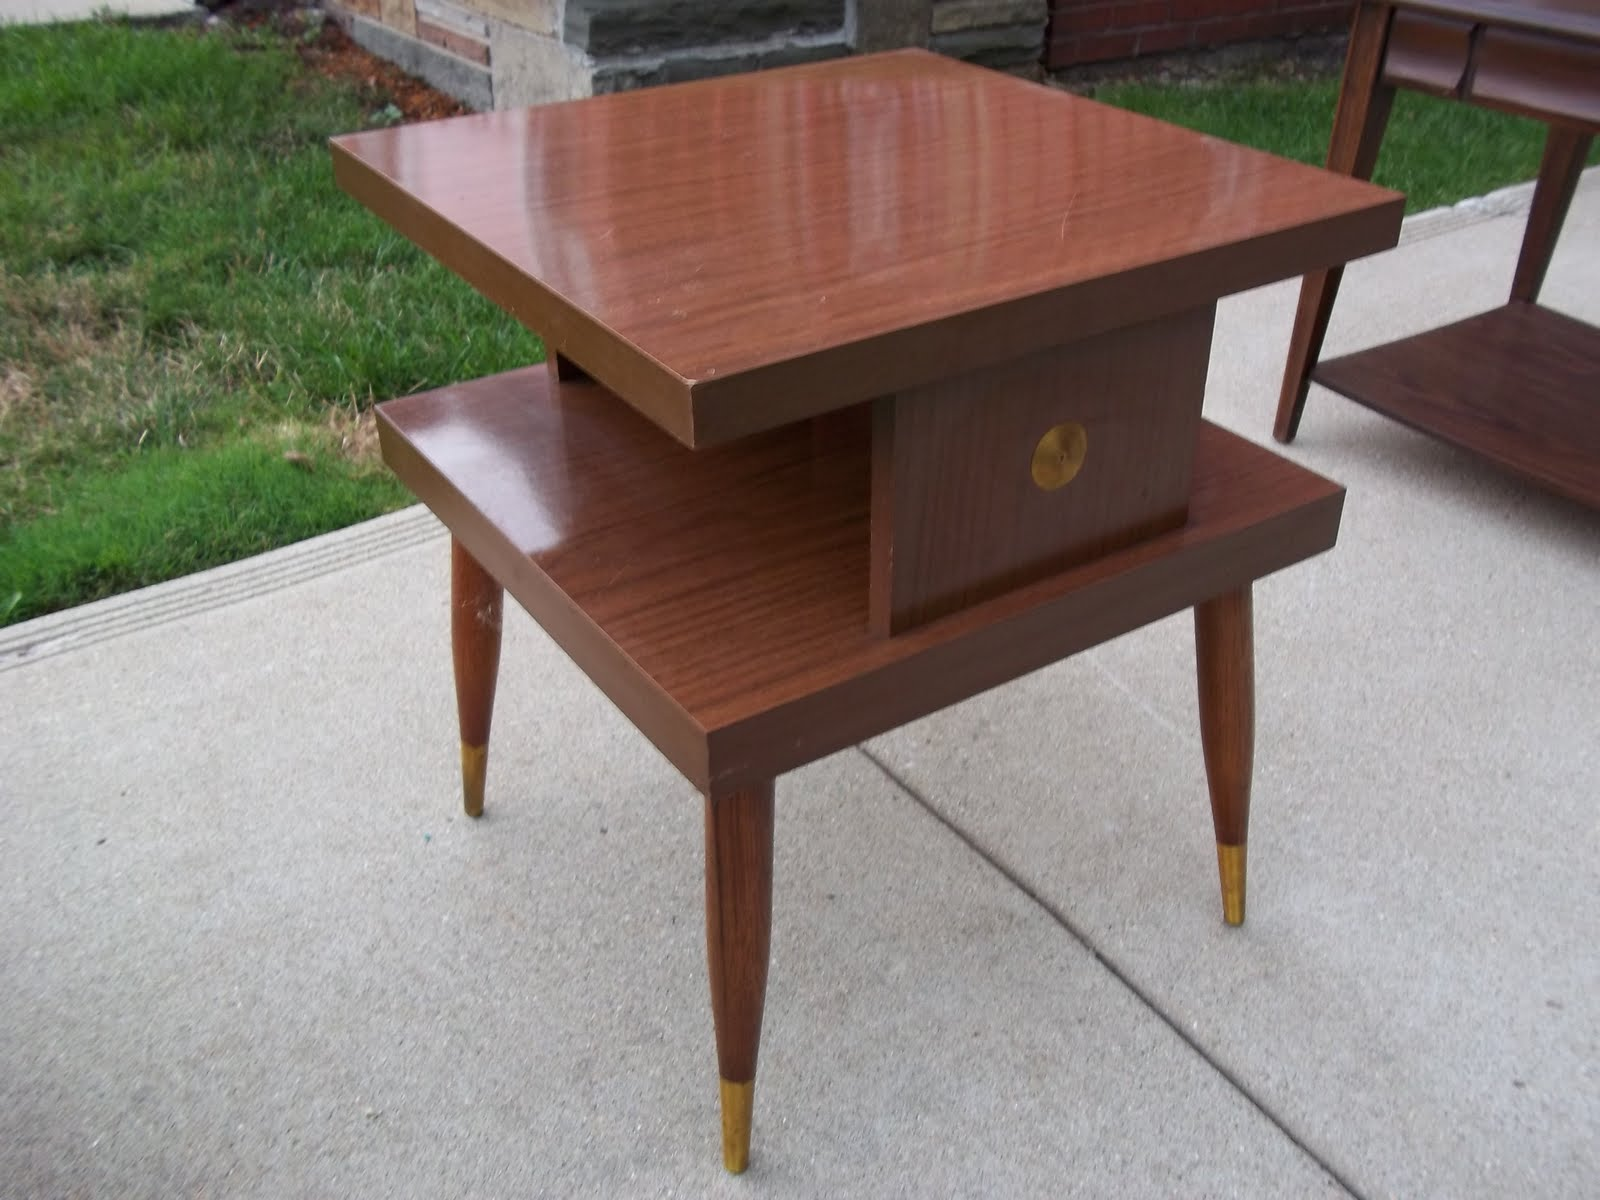 mid century tiered square side end accent table sold small low near perfect laminate midcentury with solid wood legs gold medallion center and foot covers highlight this nice